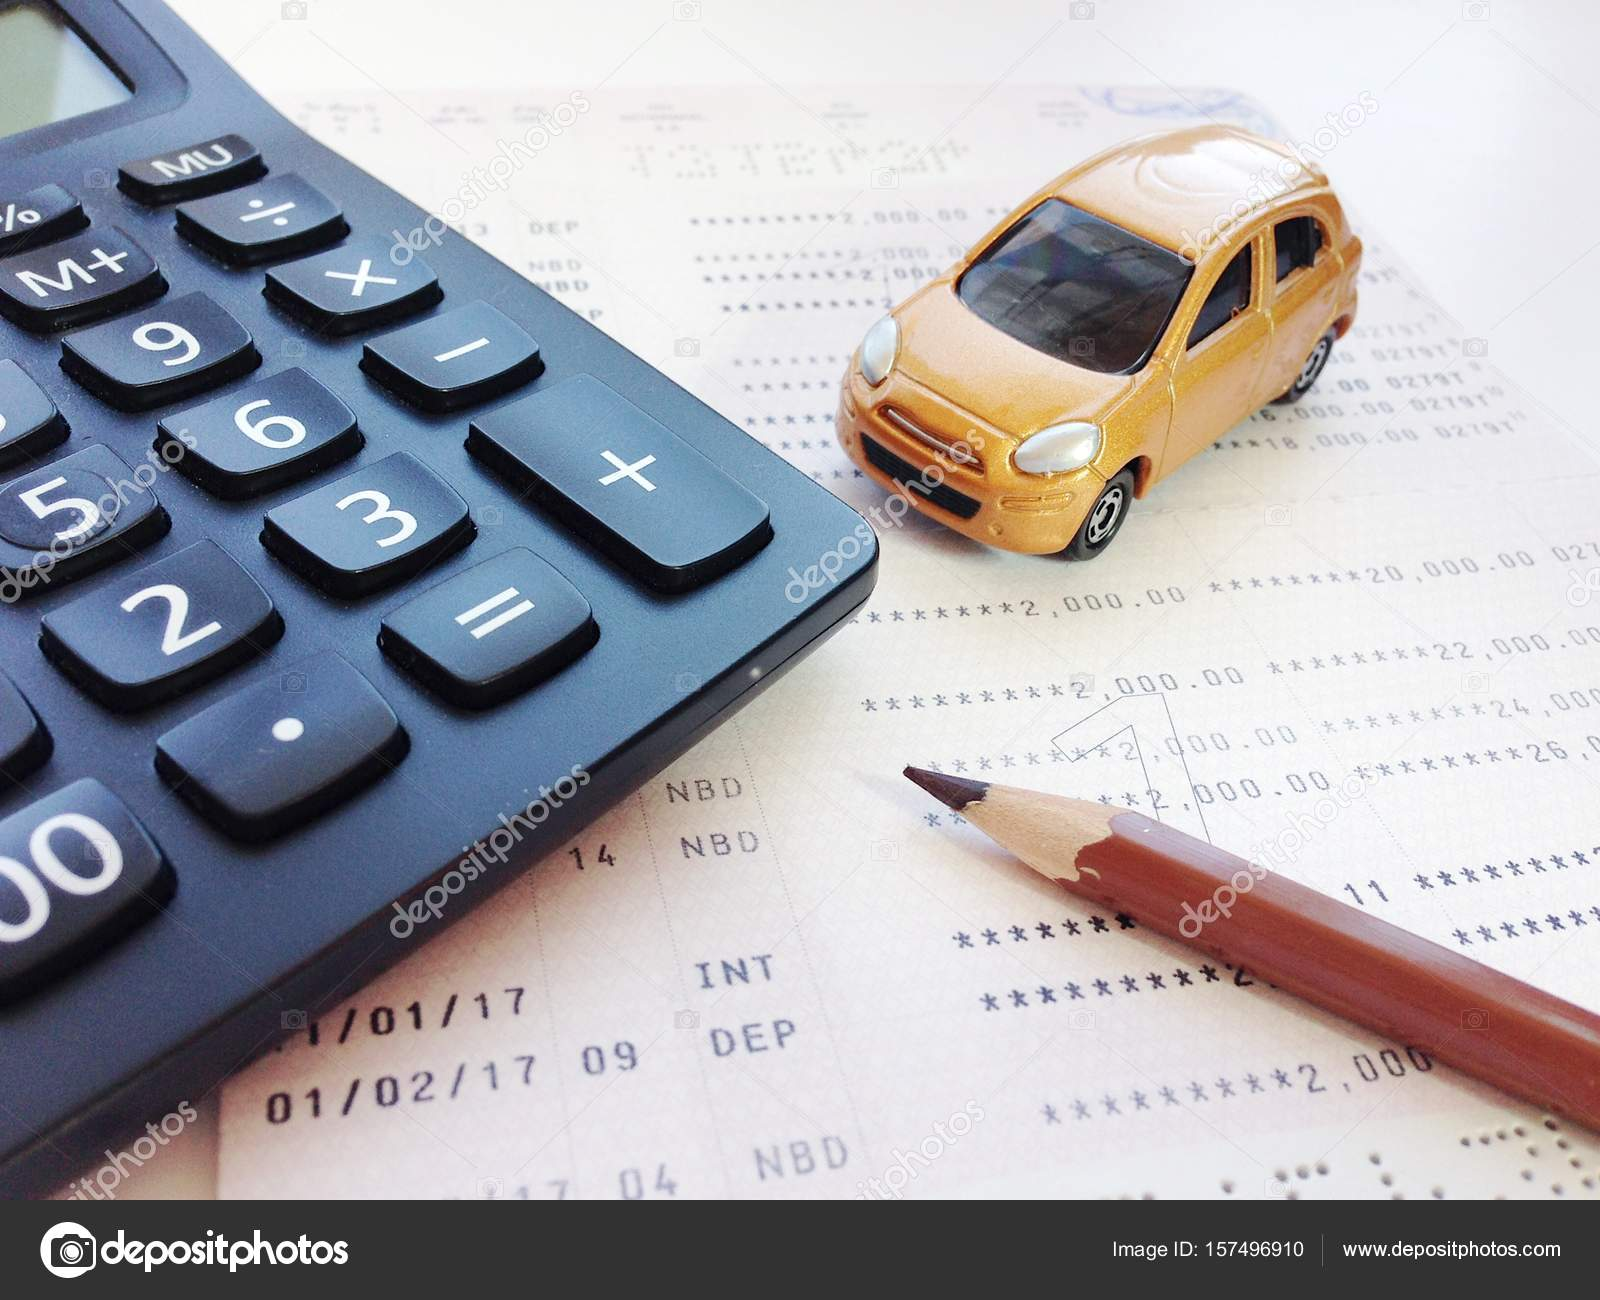 Miniature car model, pencil, calculator and savings account ...